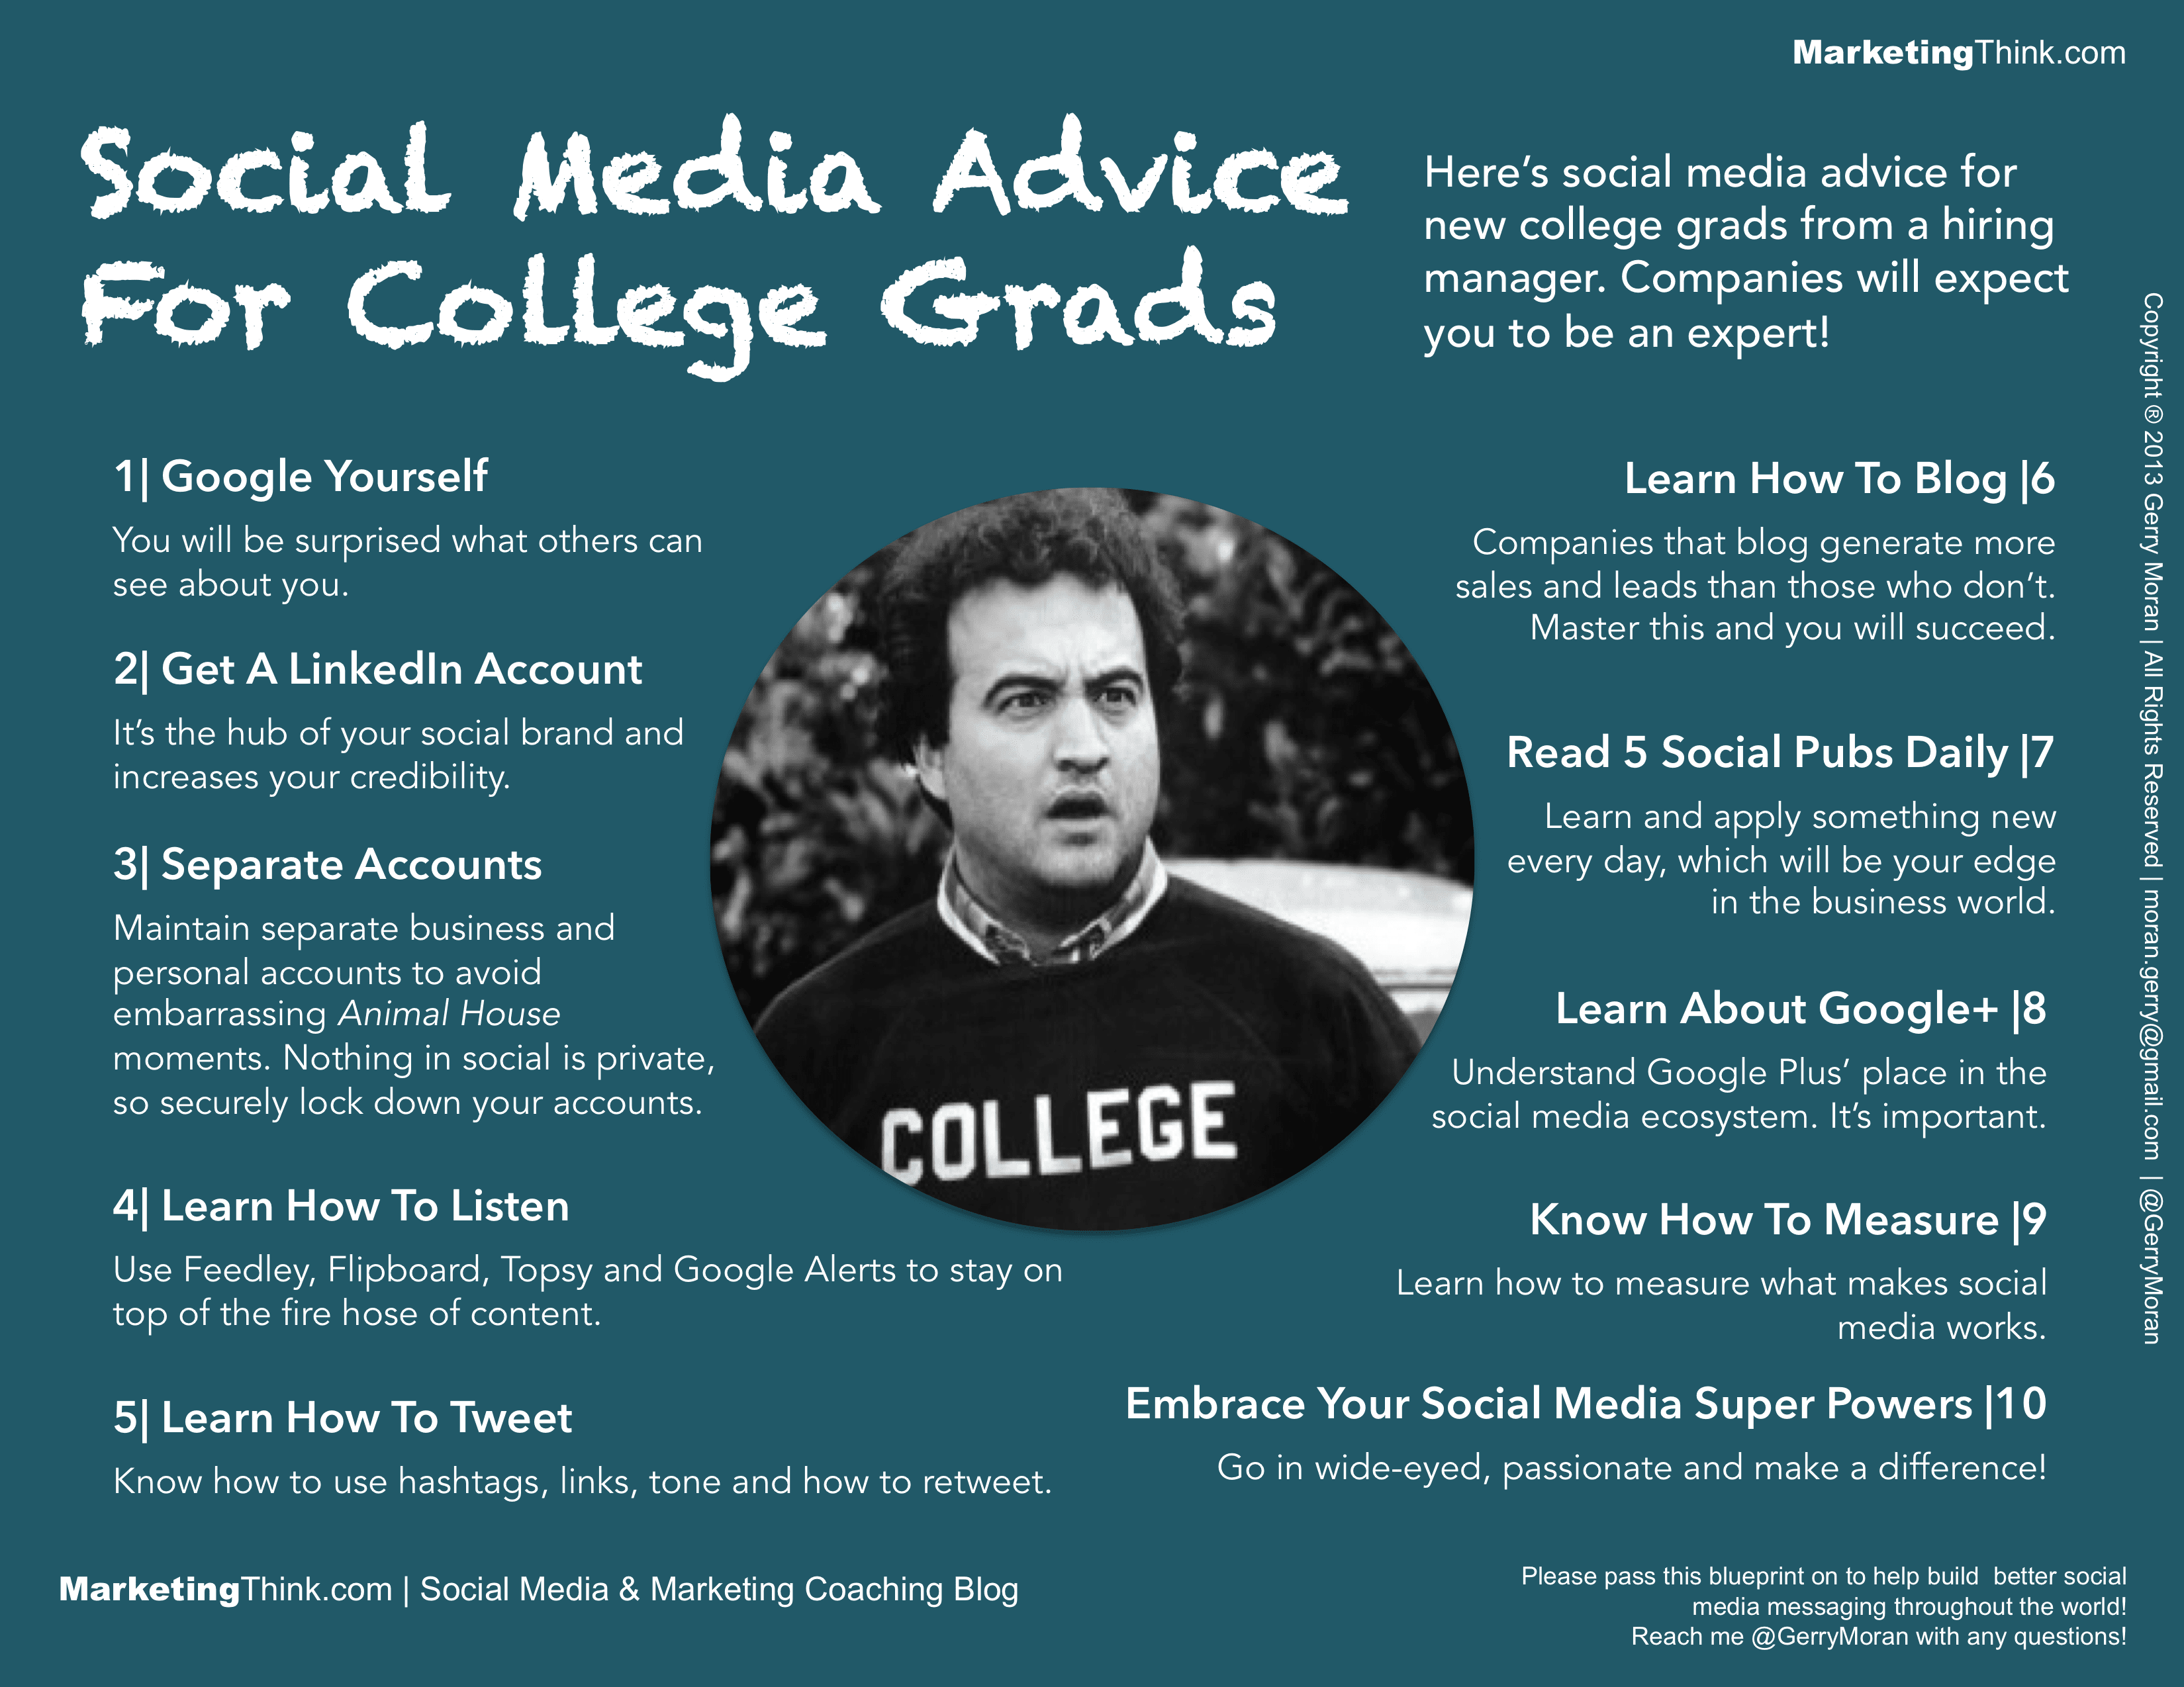 Social Media Advice For College Grads